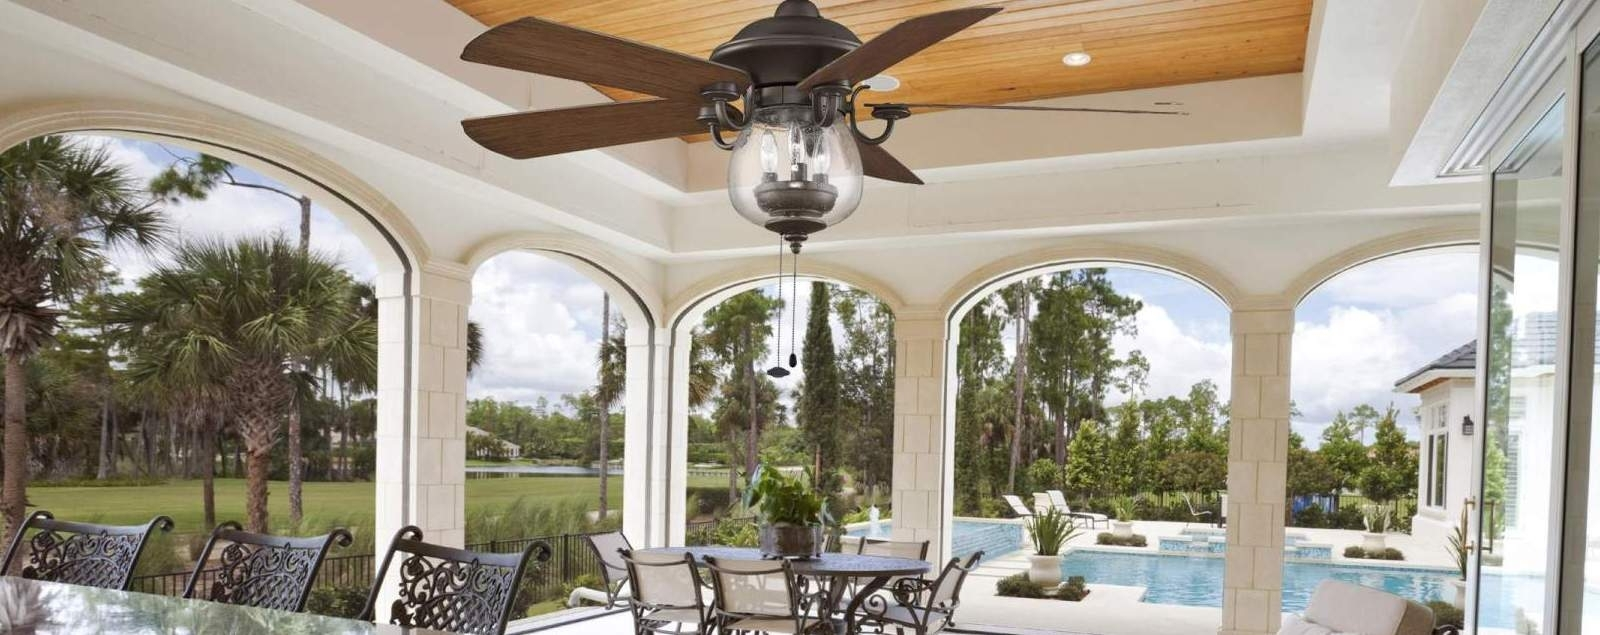 Outdoor Ceiling Fans With Lights Damp Rated Pertaining To Trendy Outdoor Ceiling Fans – Shop Wet, Dry, And Damp Rated Outdoor Fans (View 13 of 20)